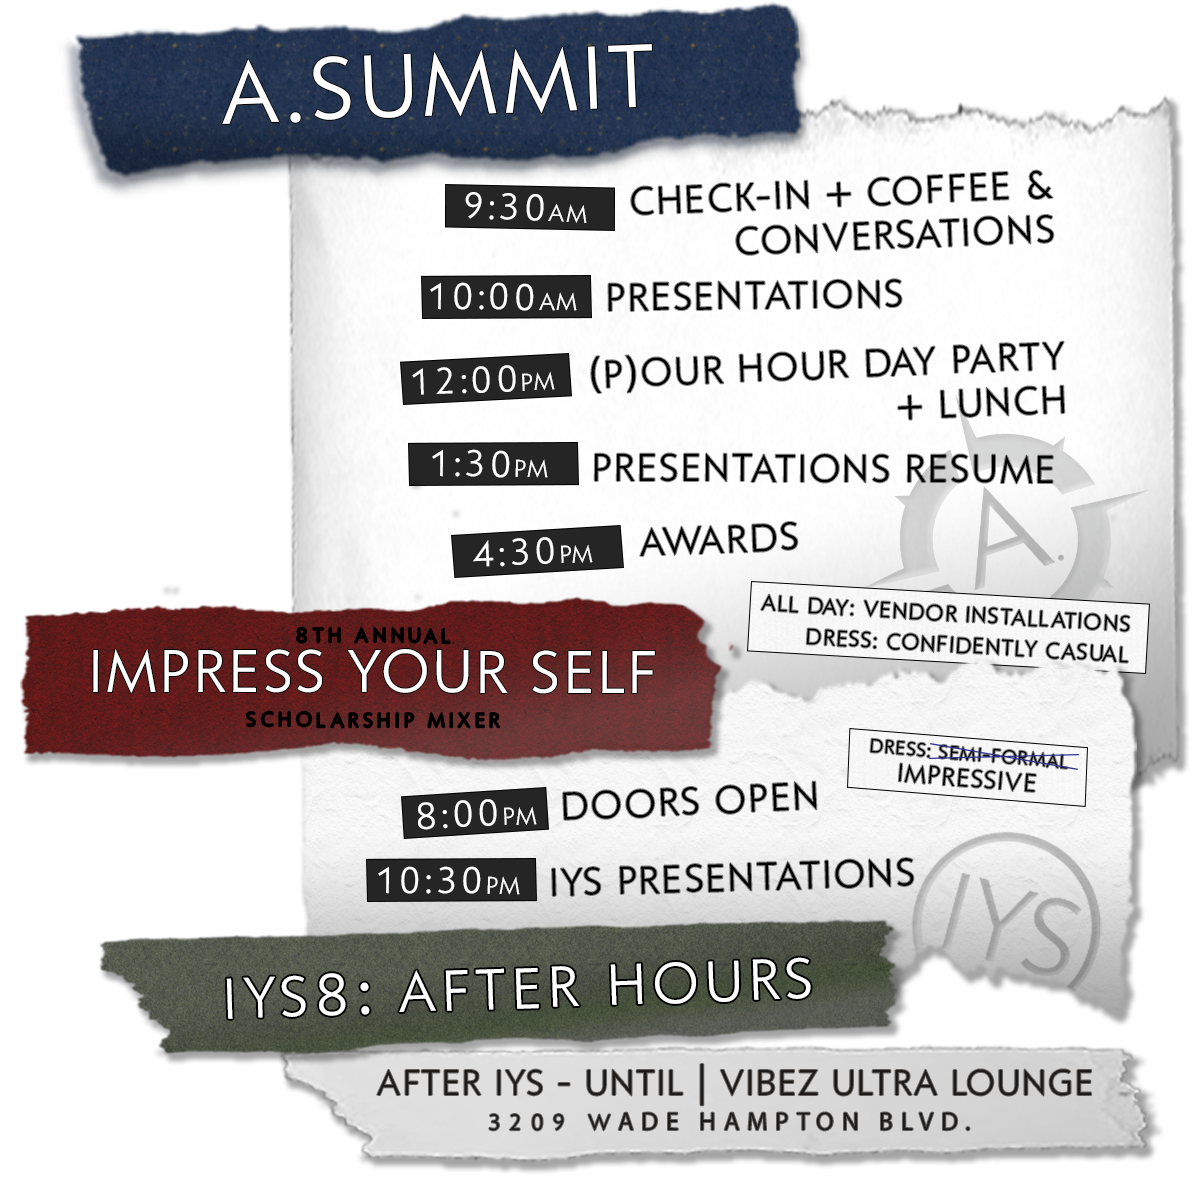 ASummit IYS8 Schedule Cut Out.png